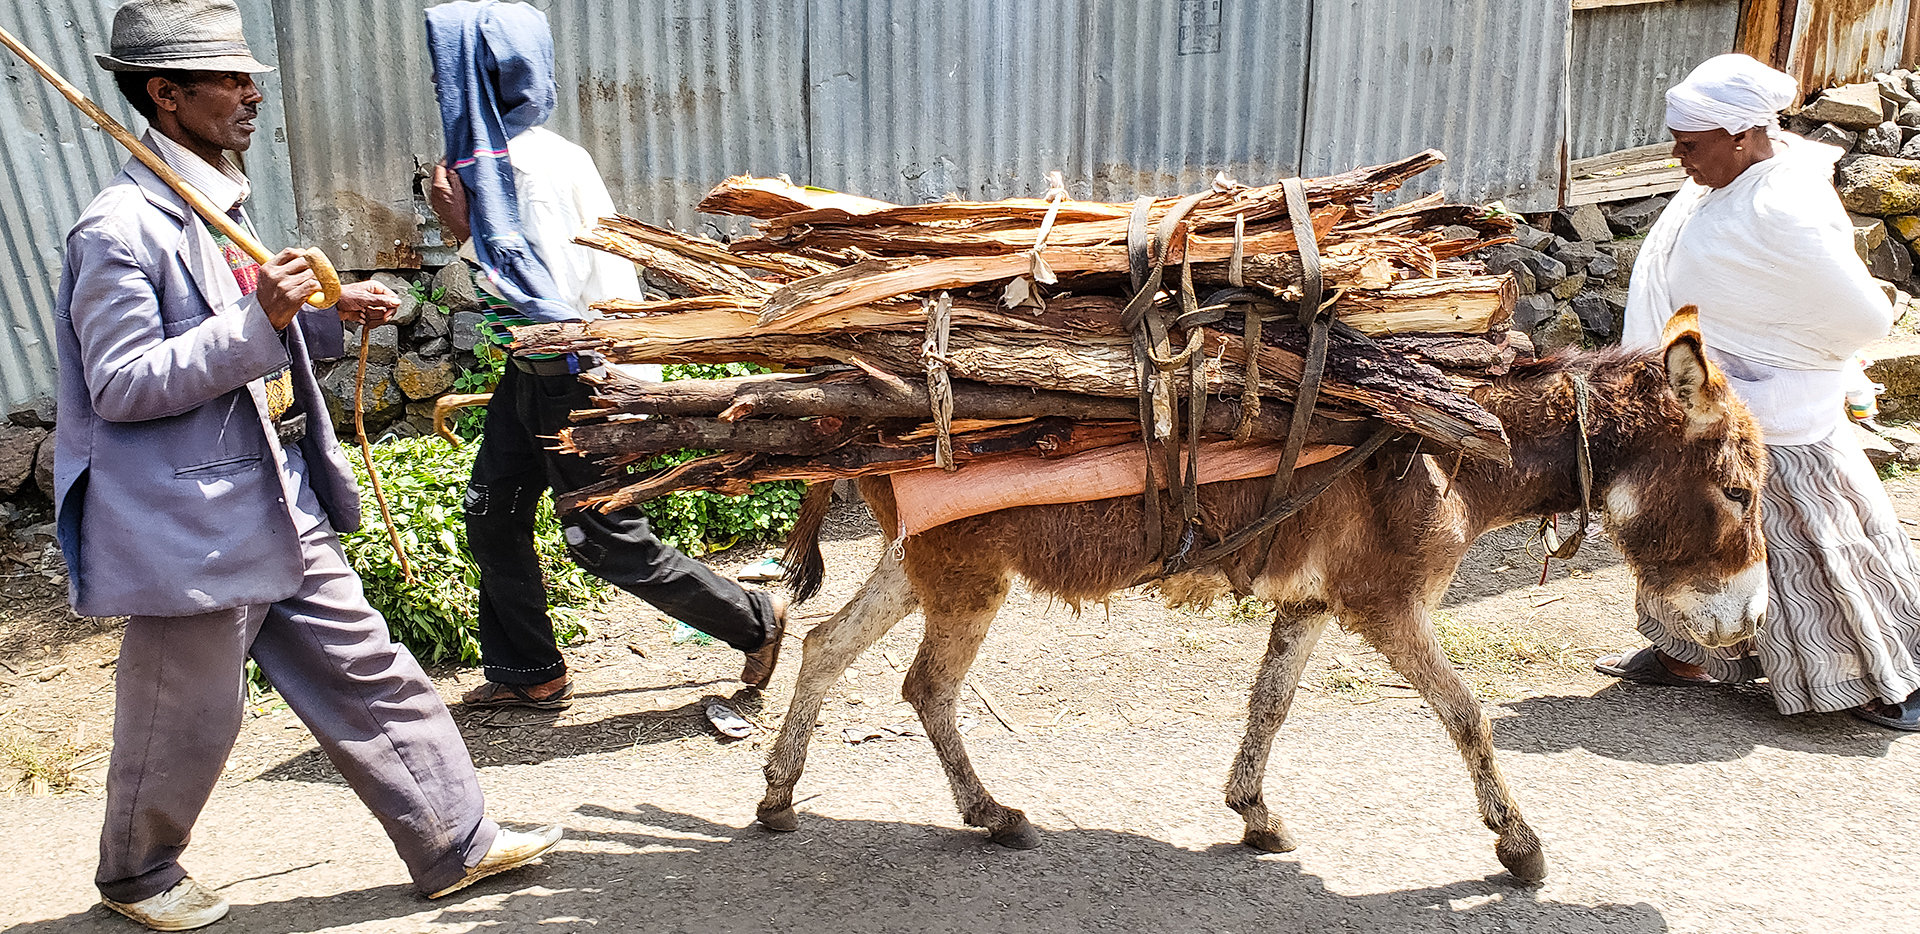 Donkey Heading to Market